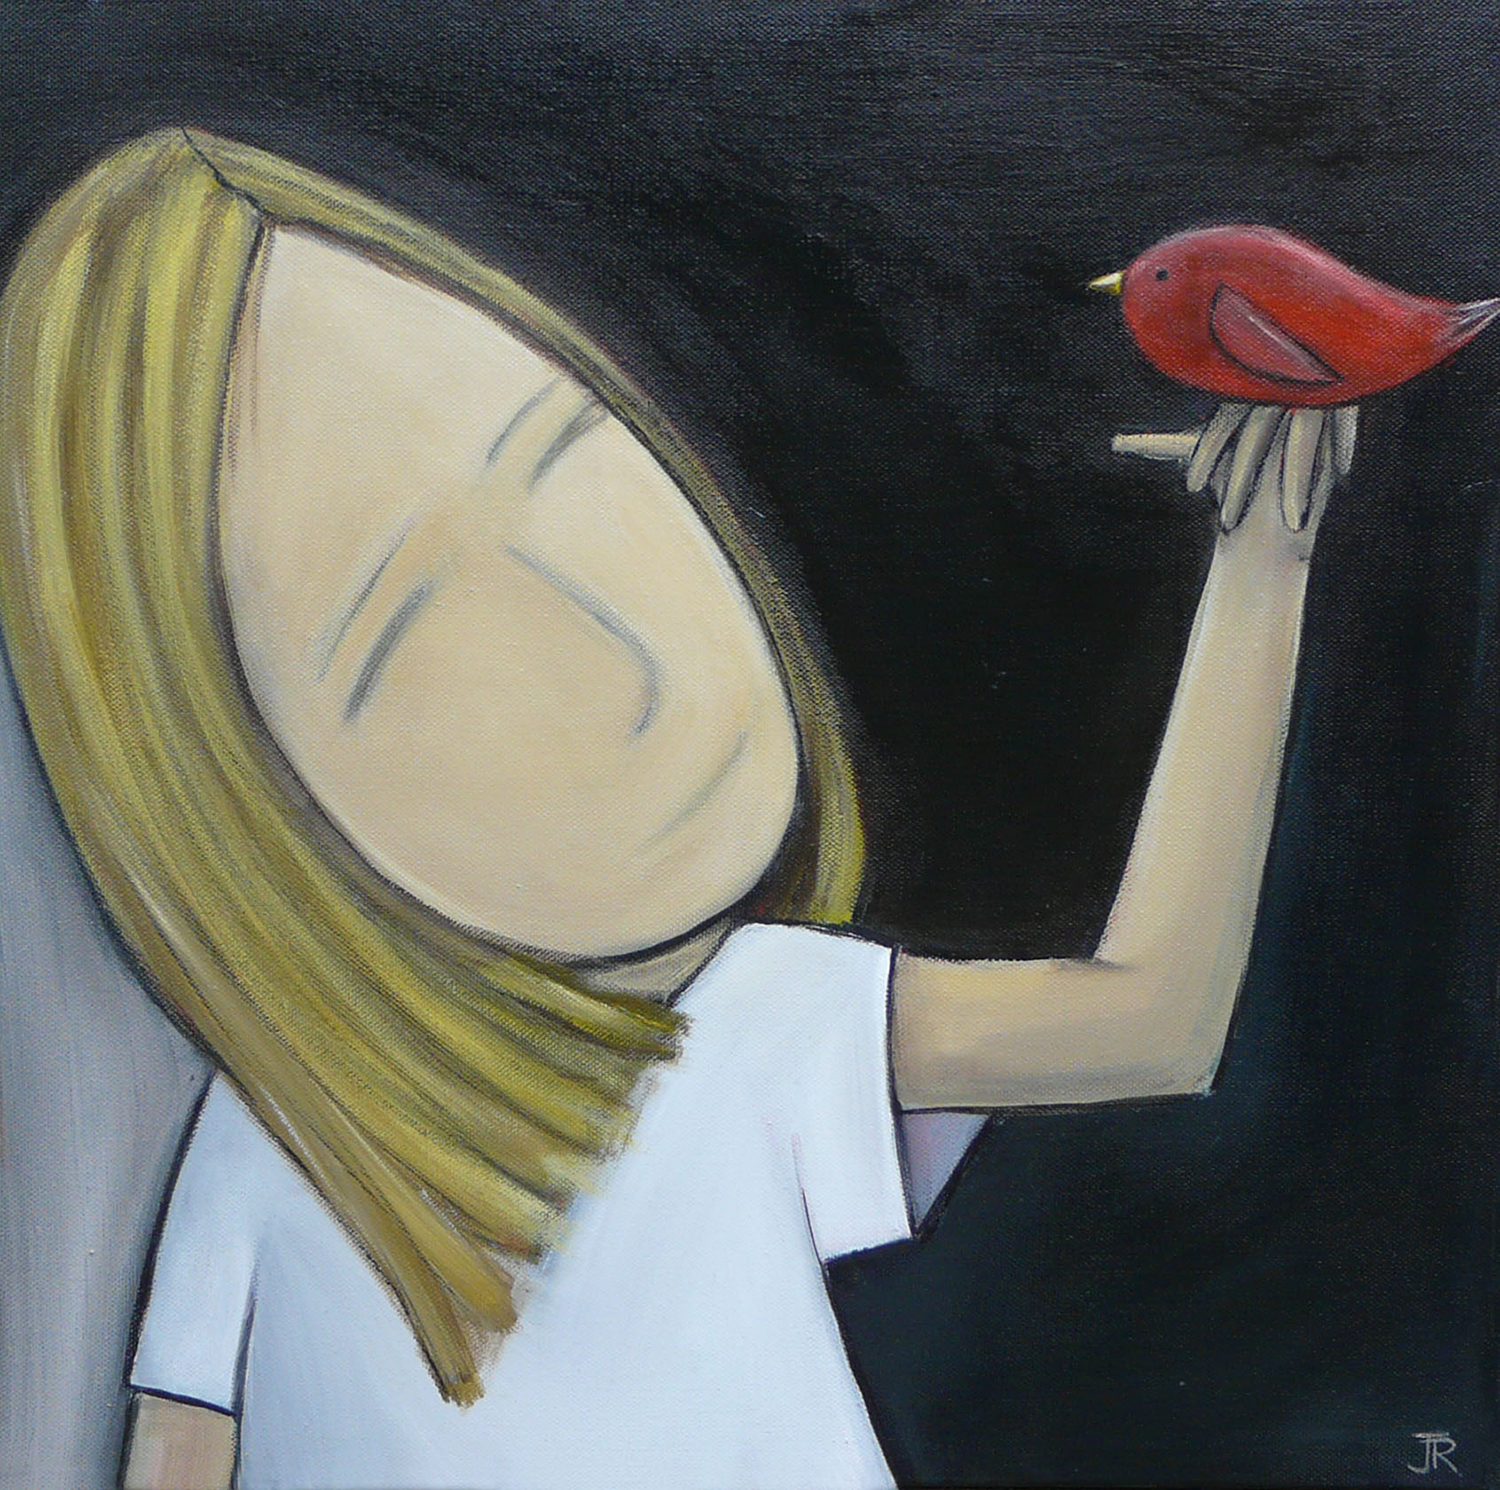 Julie's Gallery - Take a look around, enjoy the art, and find something you adore.